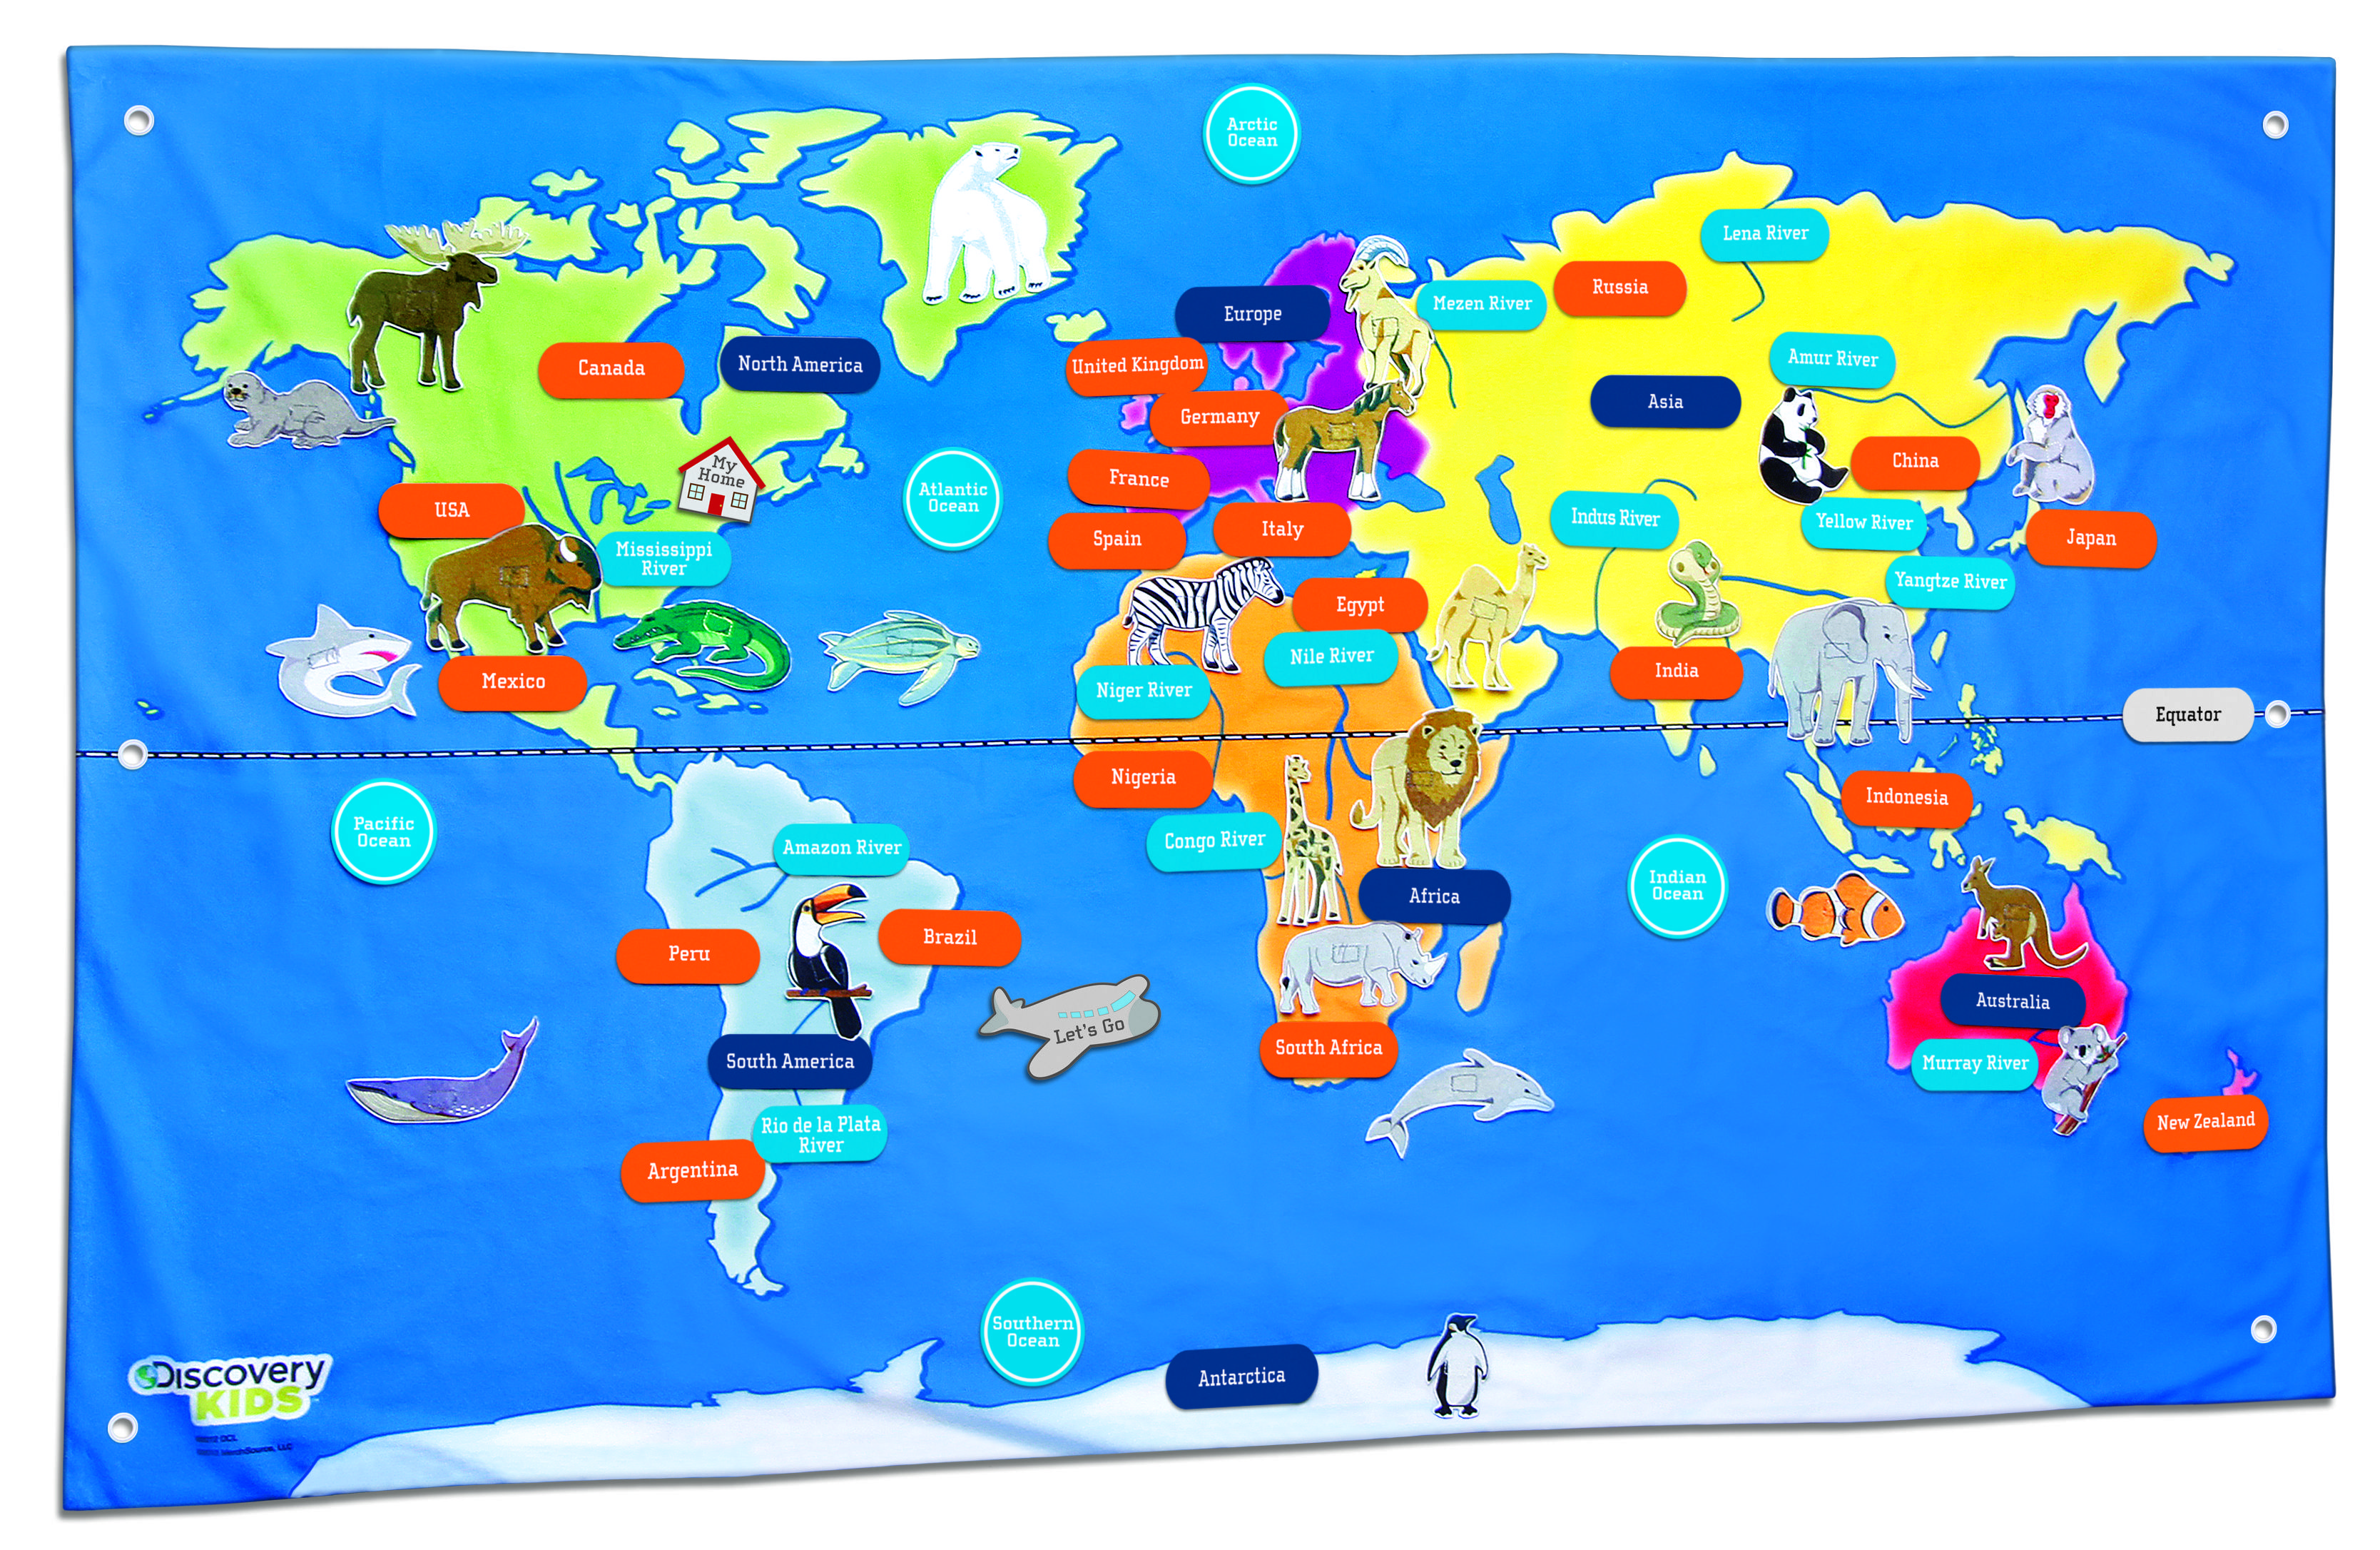 Dkmapeg 33362172 mission kids pinterest the discovery kids fabric acitivity world map from merch source is made out of soft felt like material with reinforced grommets for hanging gumiabroncs Choice Image